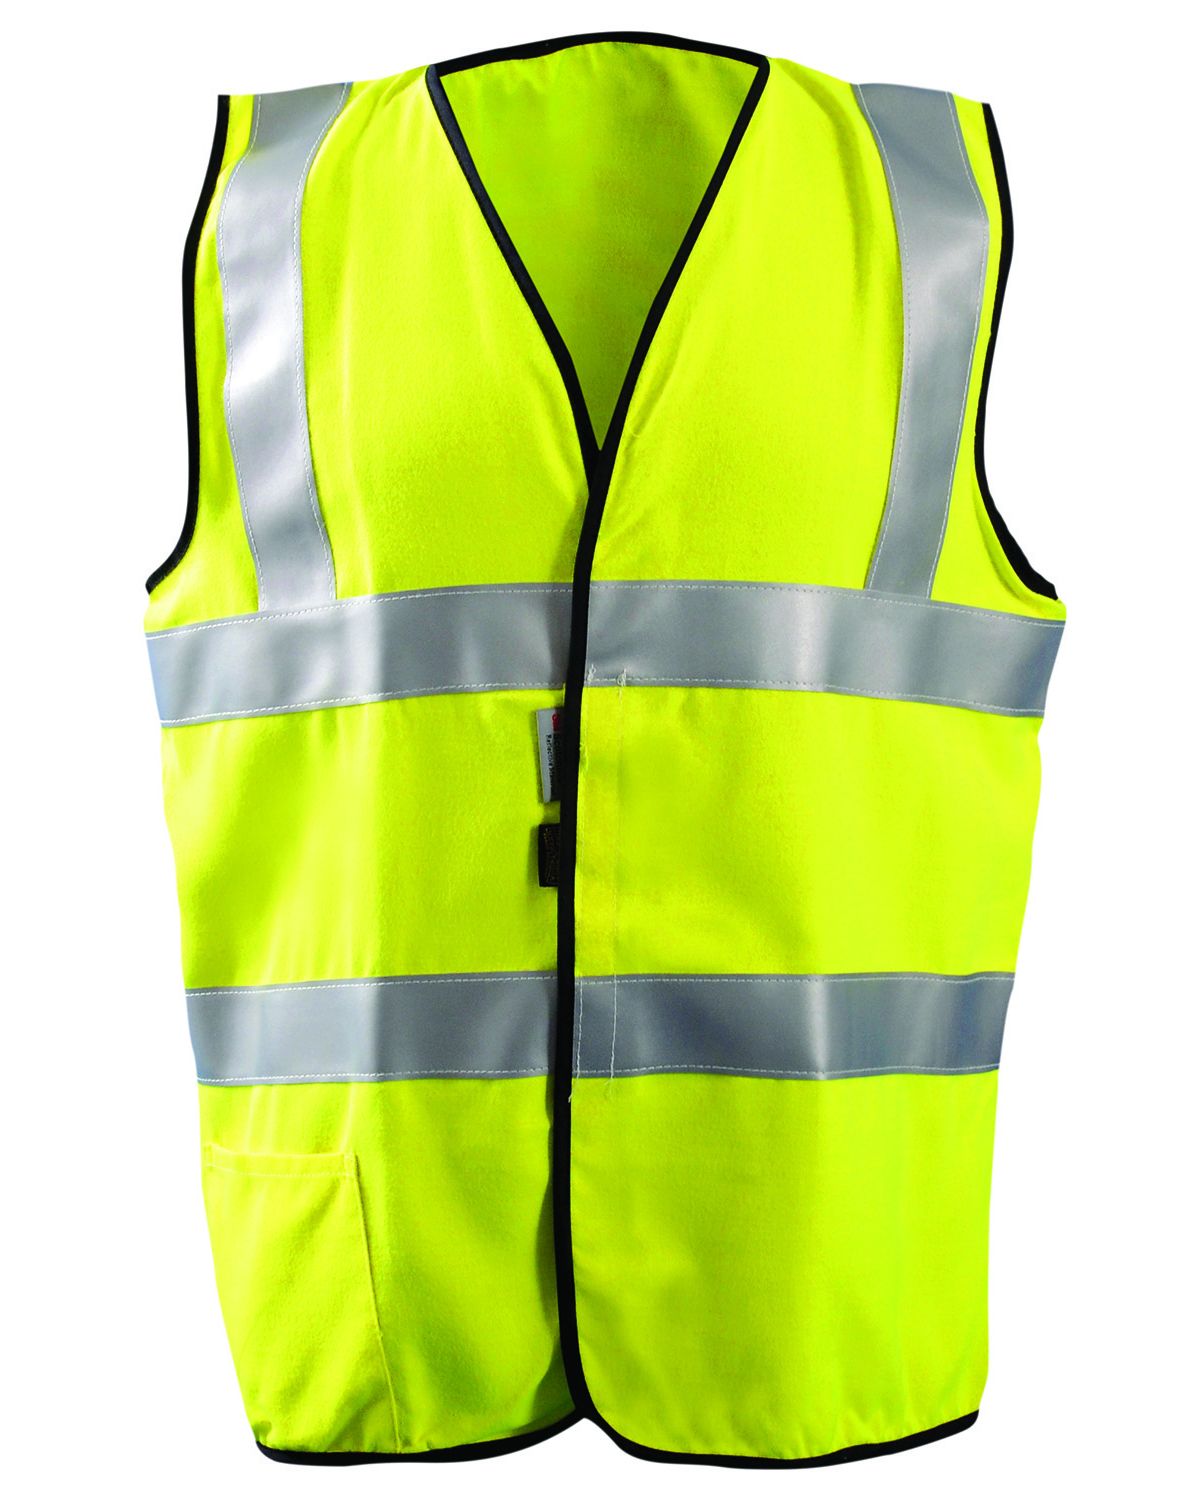 OccuNomix LUXSSFG - Men's High Visibility Classic Solid Standard Safety Vest